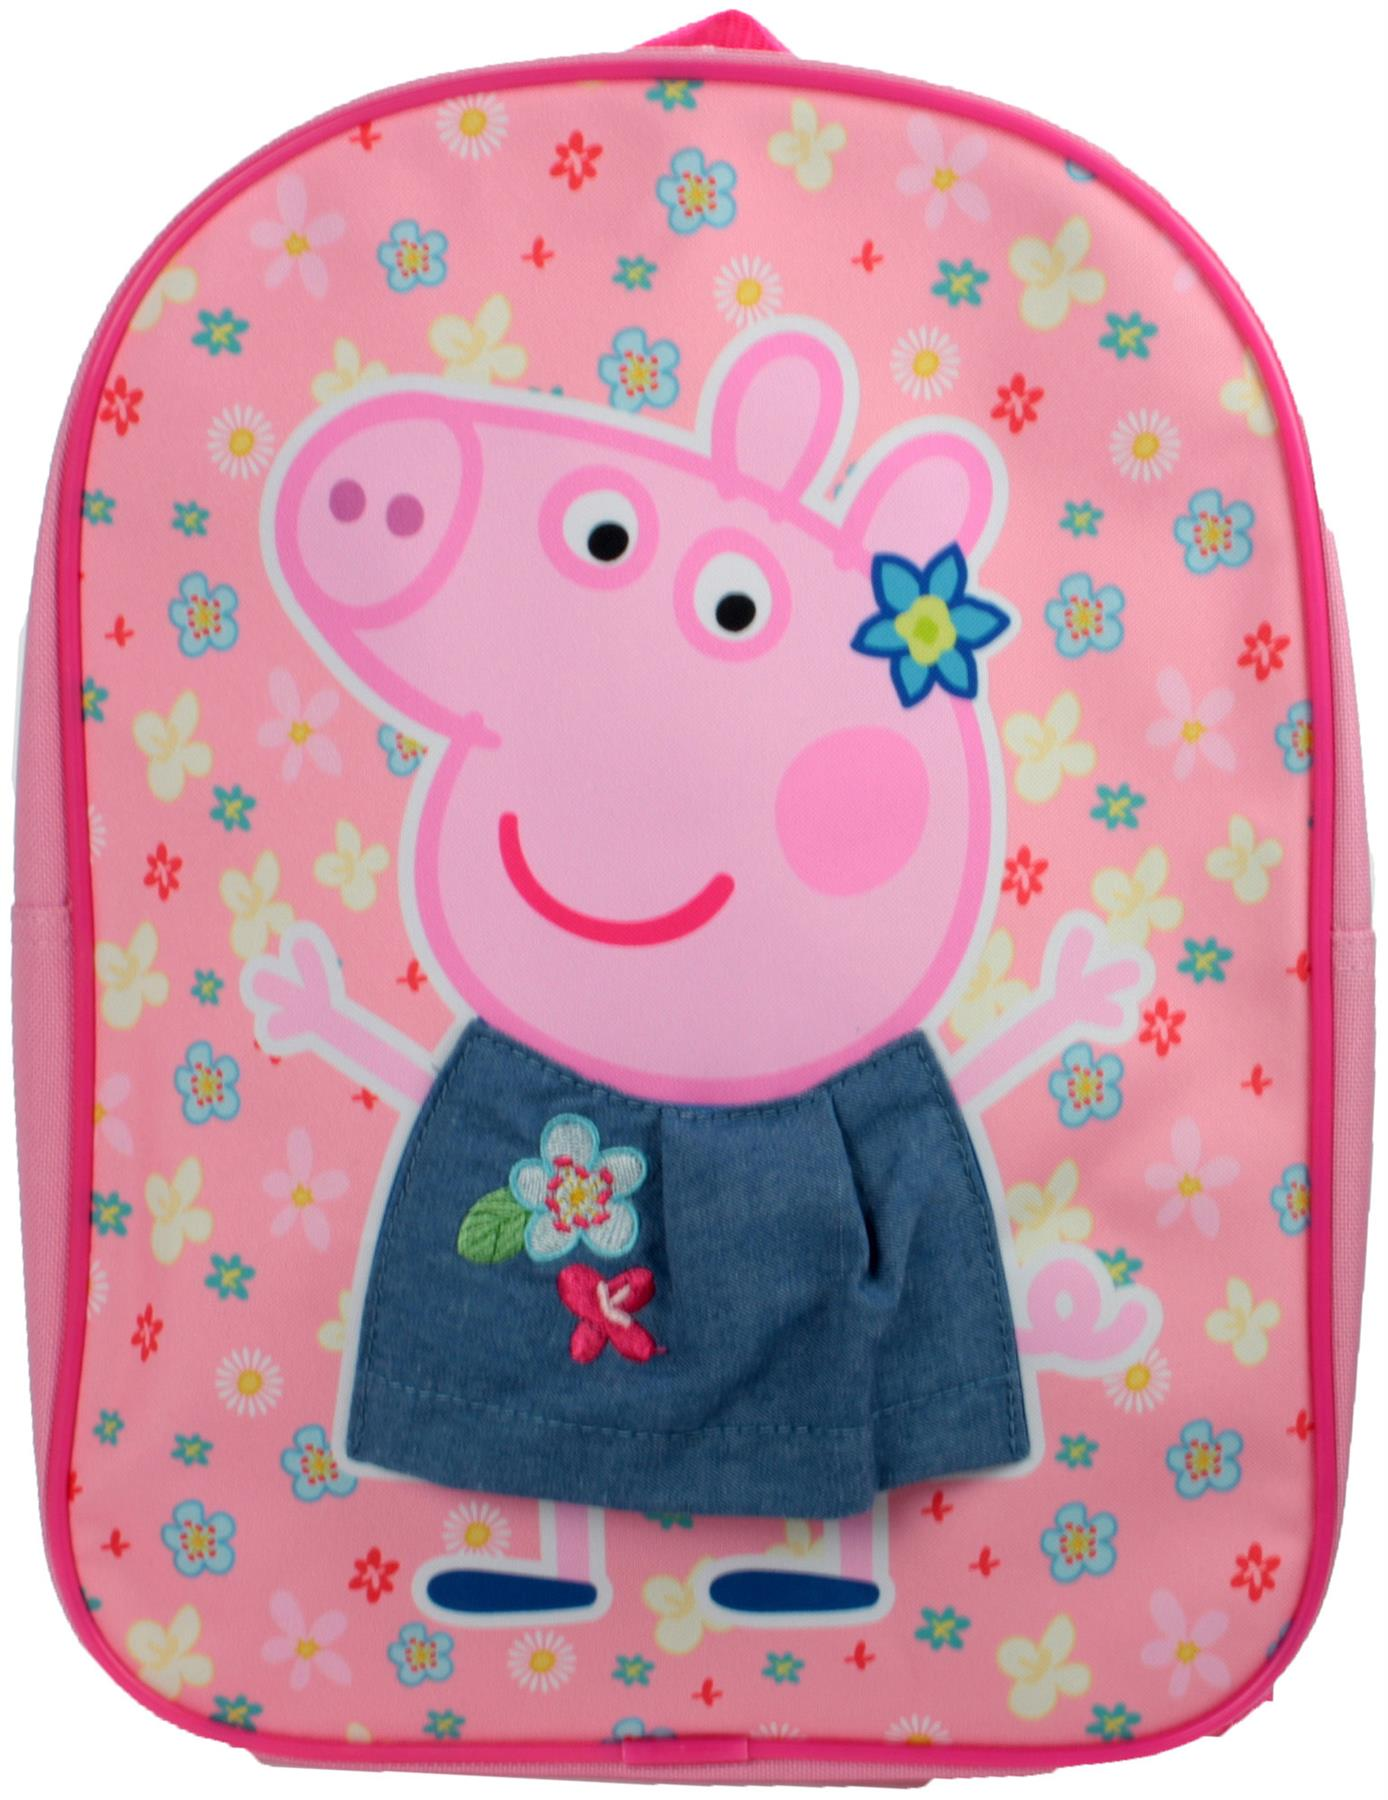 PINK Kids Accessories Bag BNIP Trade Mark Collections PEPPA PIG EVA BACKPACK